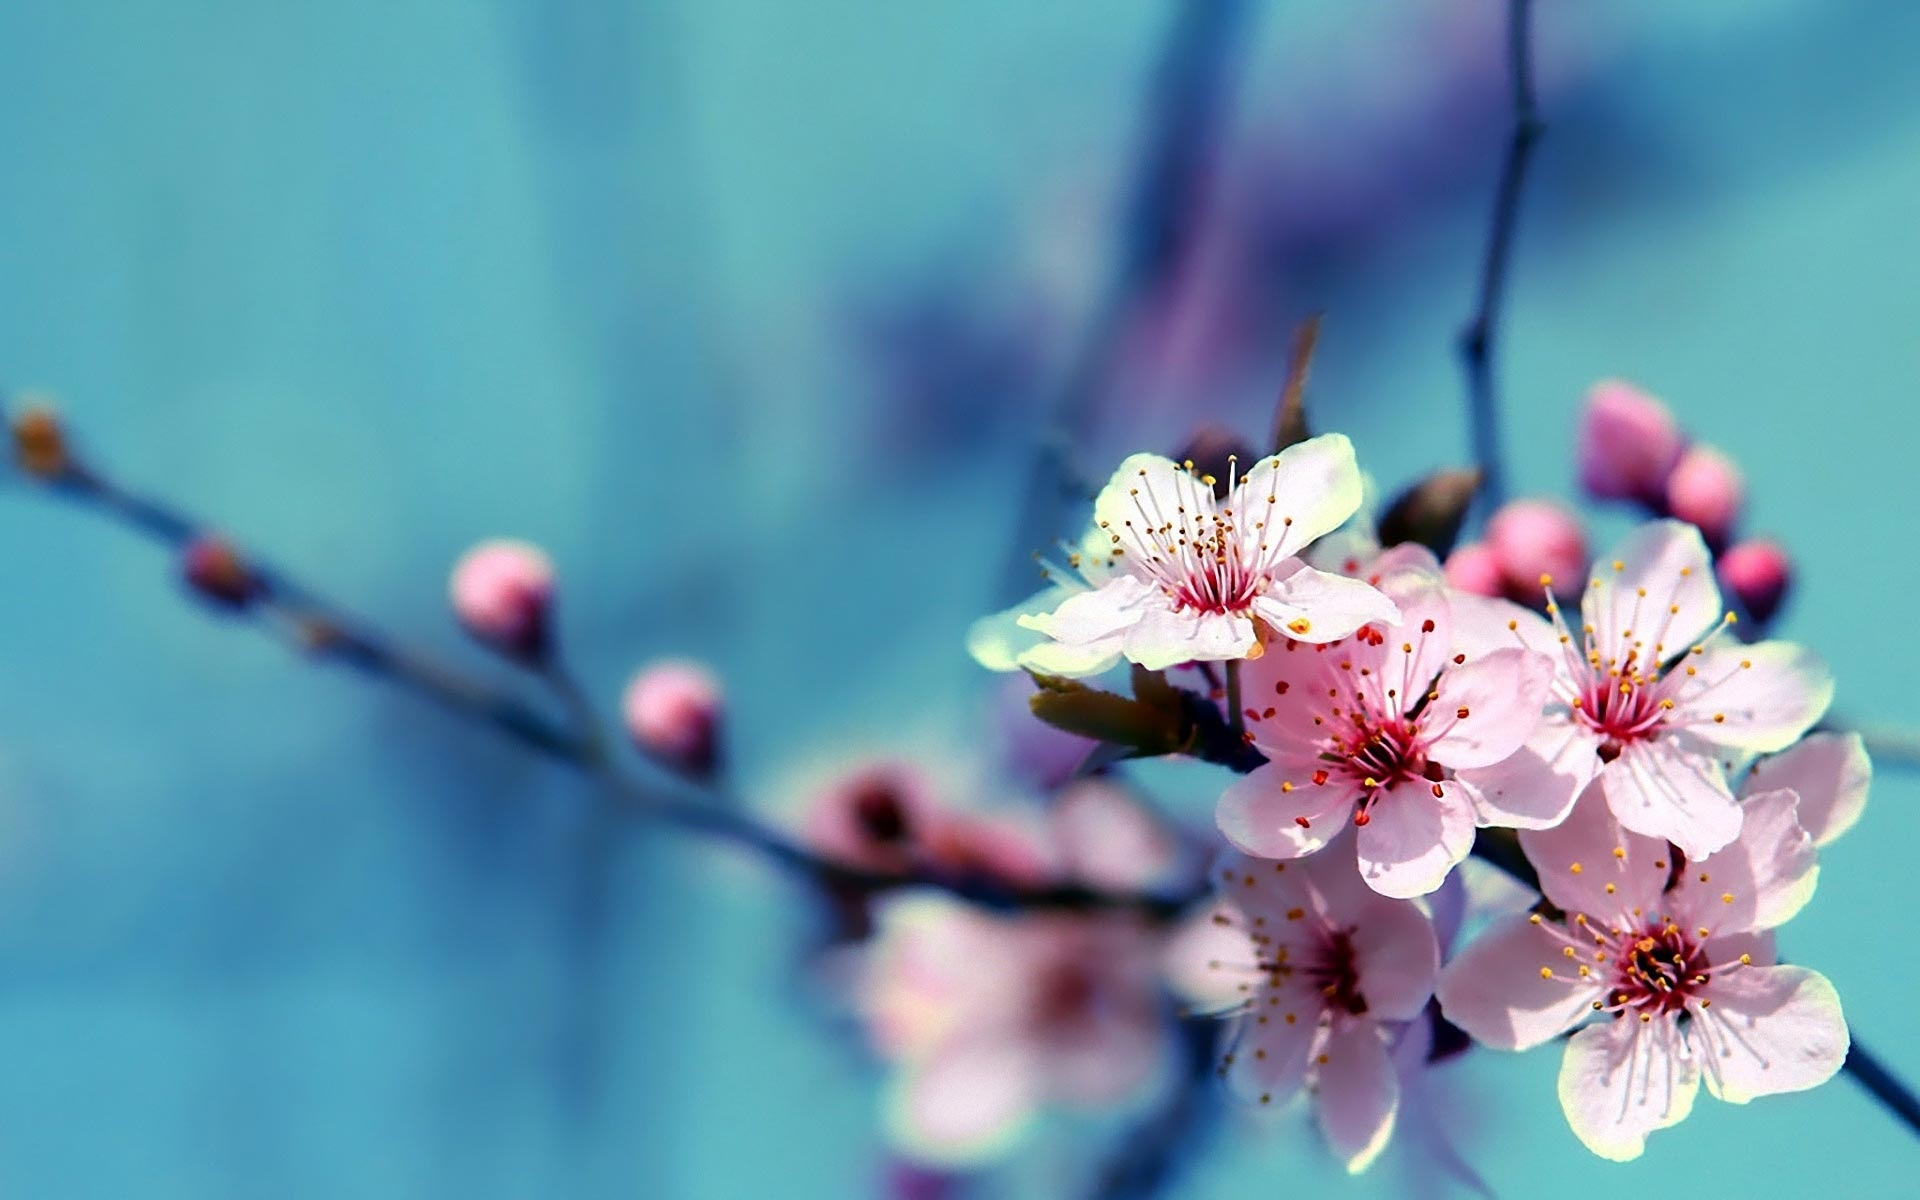 April spring backgrounds clipart library download 110 Amazing HD wallpapers of beautiful flowers   AndroidGuys clipart library download